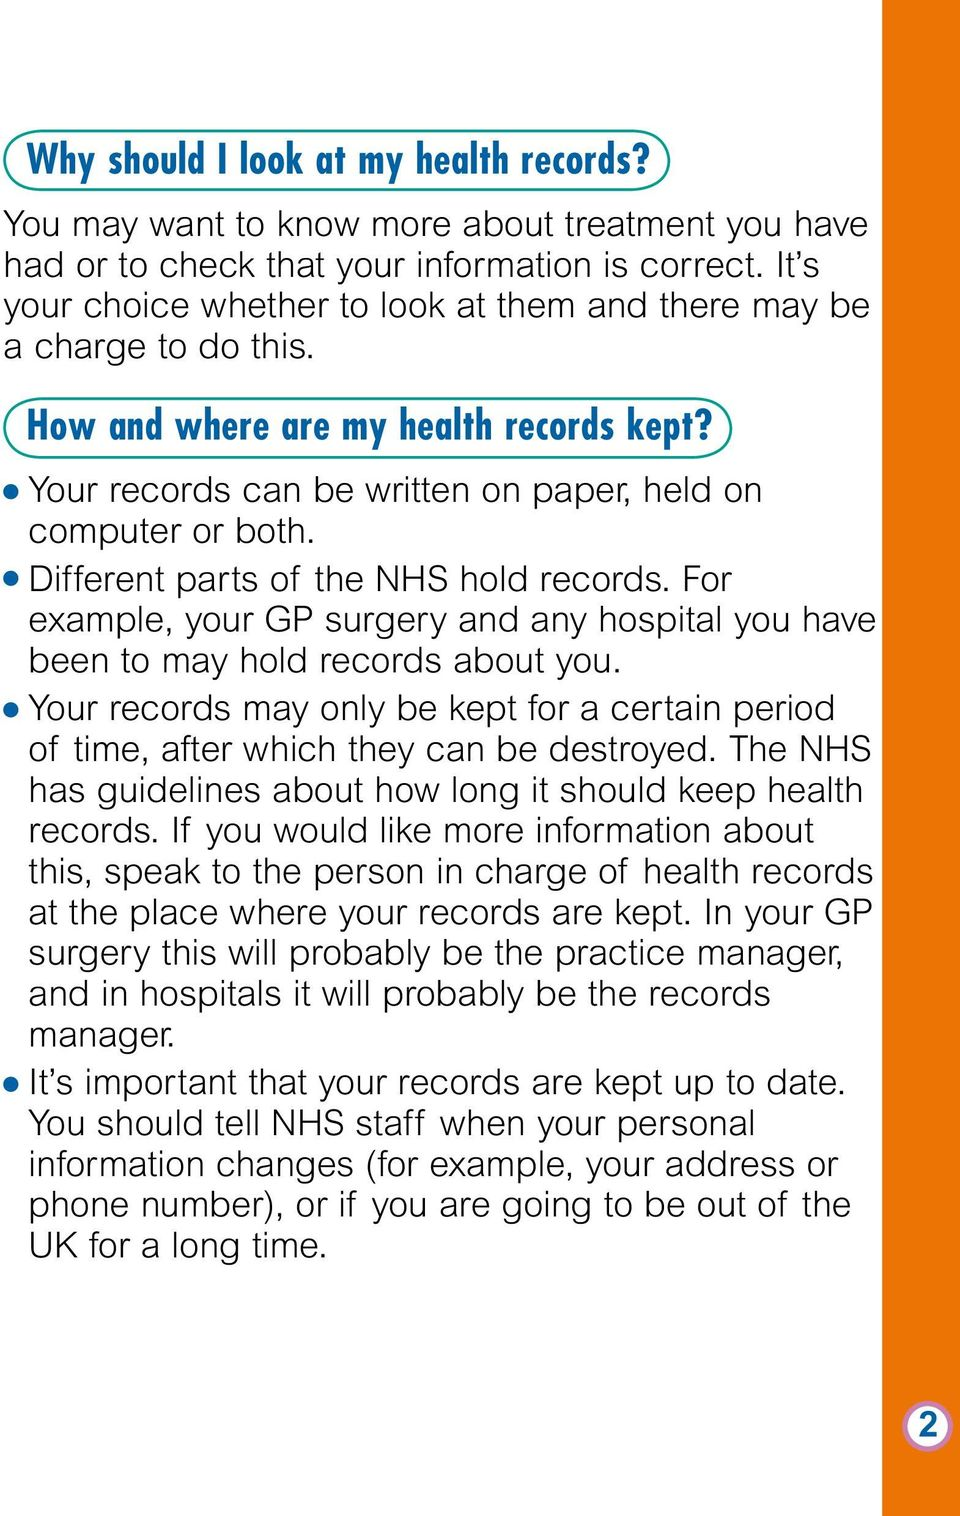 Different parts of the NHS hold records. For example, your GP surgery and any hospital you have been to may hold records about you.